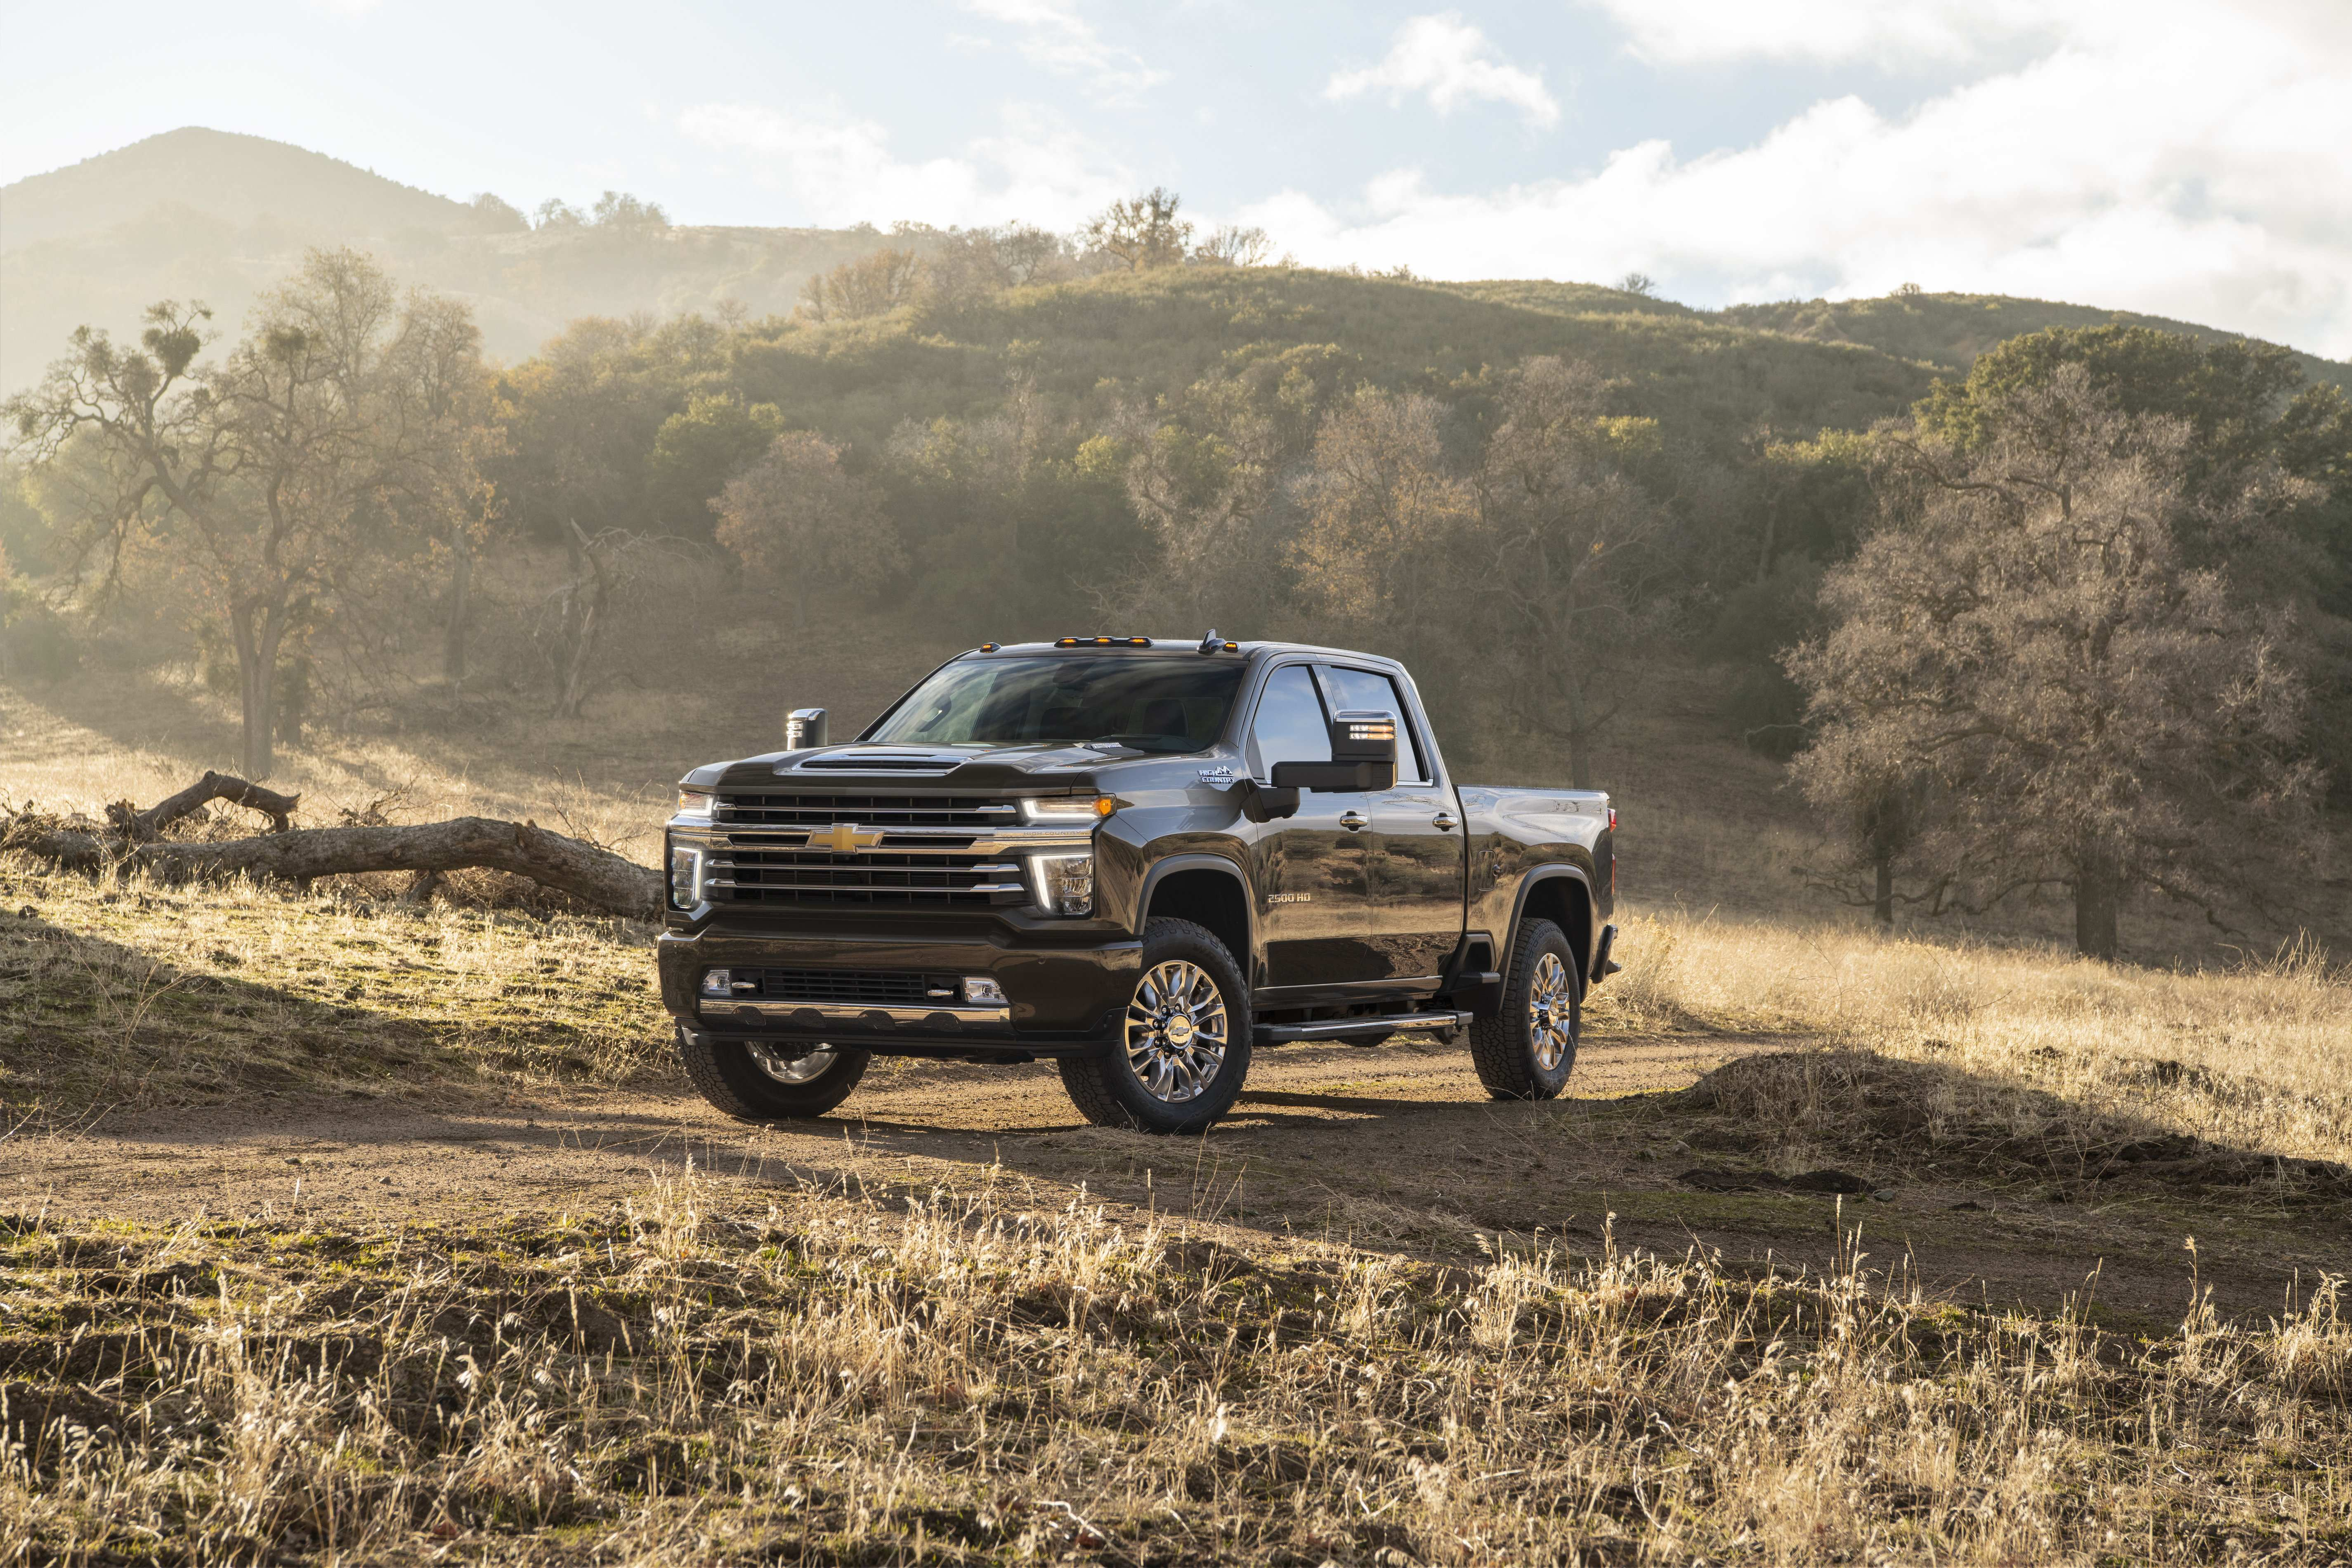 75 The Best 2020 Chevy 2500Hd Duramax Price And Release Date